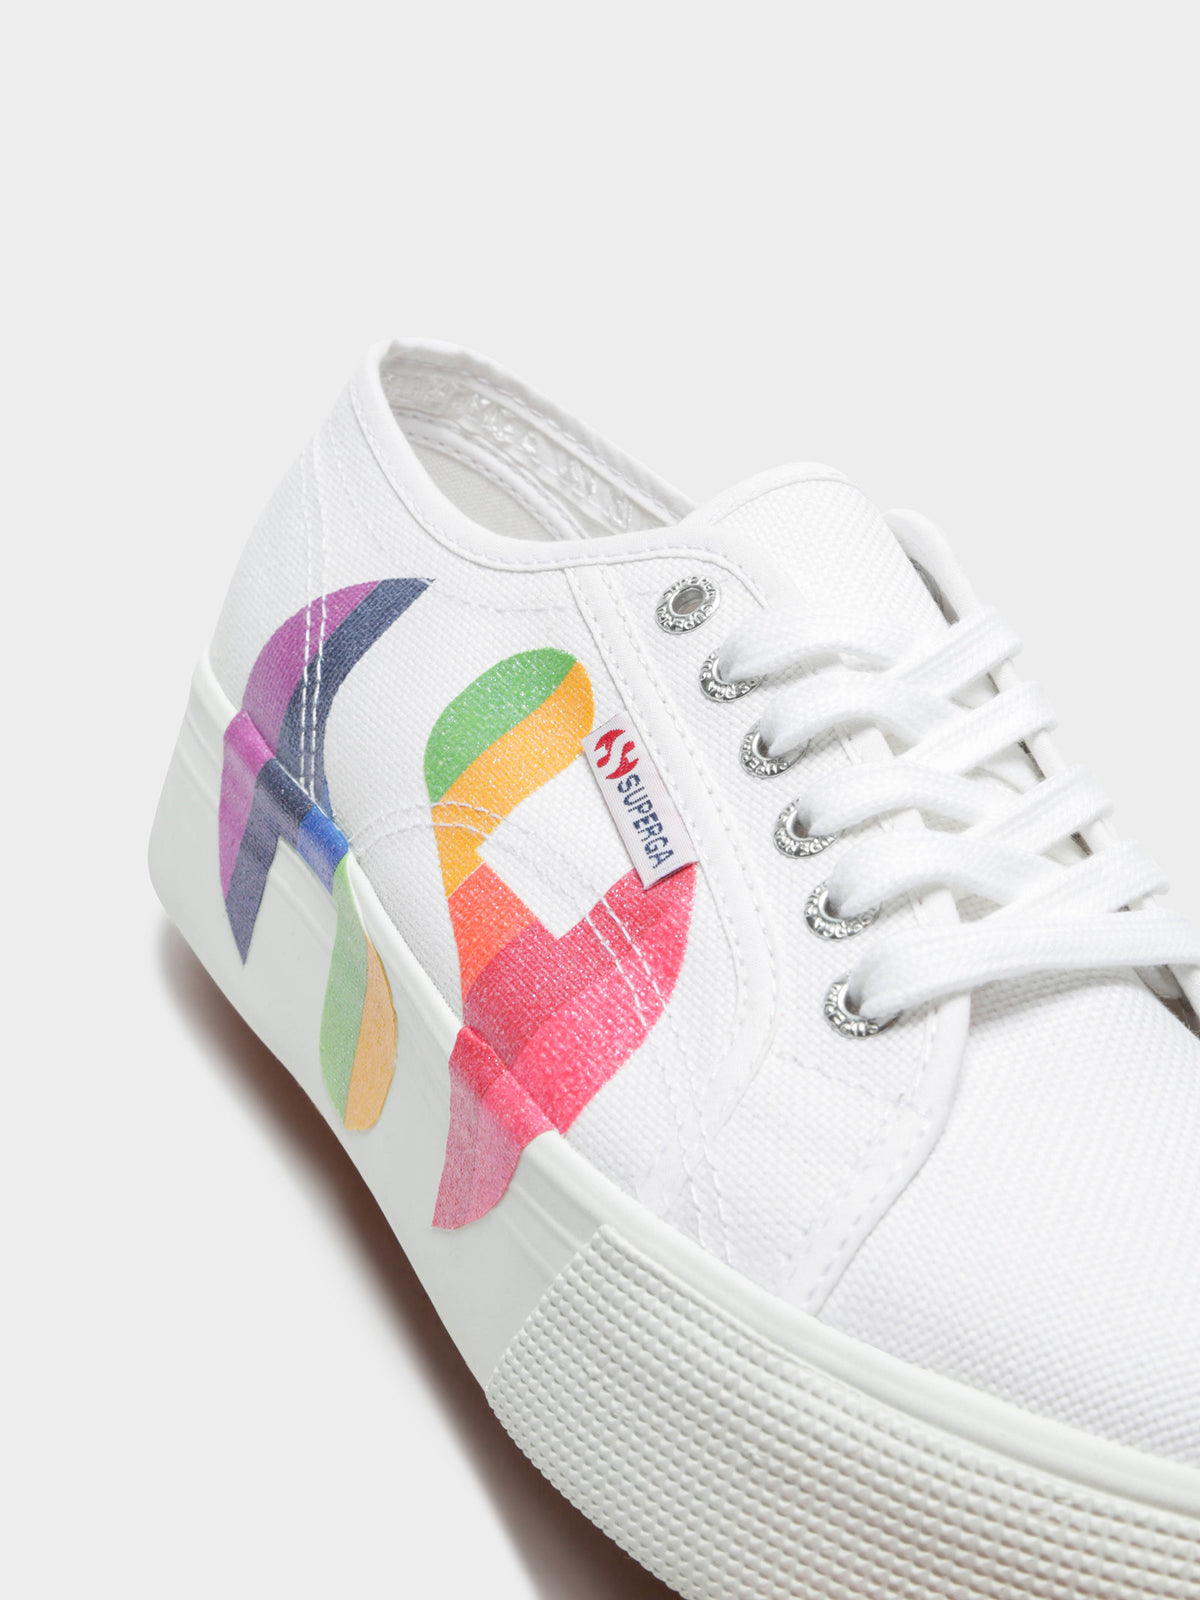 Womens 2790 Cotw Rainbow Logo Sneakers in Glitter Rainbow & White